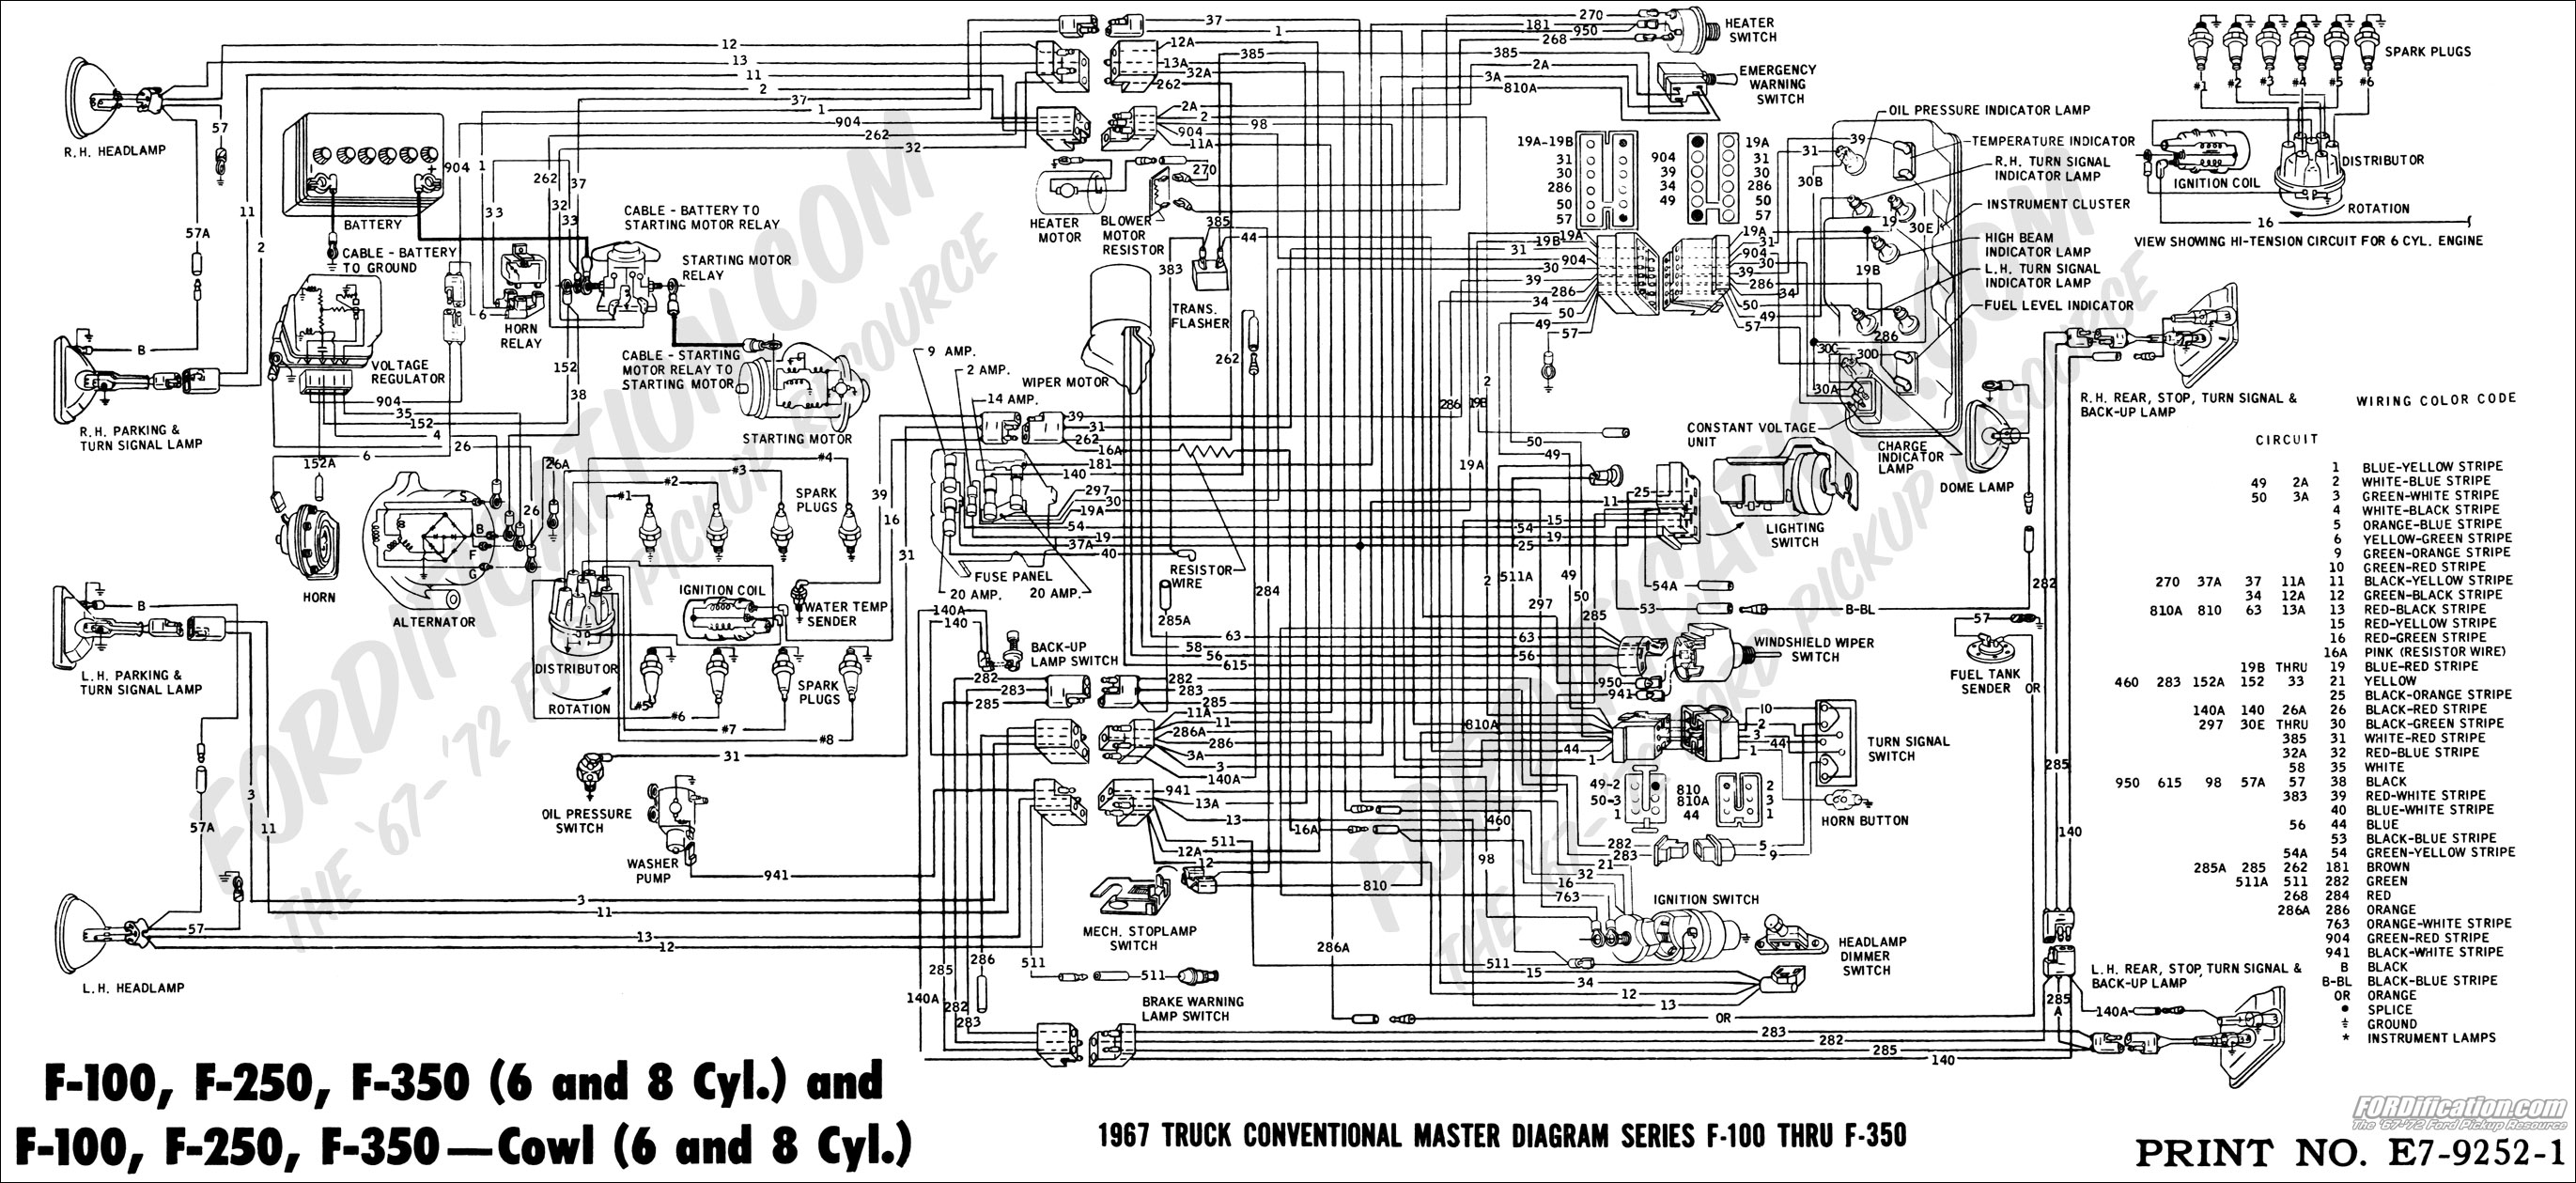 Ford Truck Electrical Diagrams - Diagram Schematic Ideas on